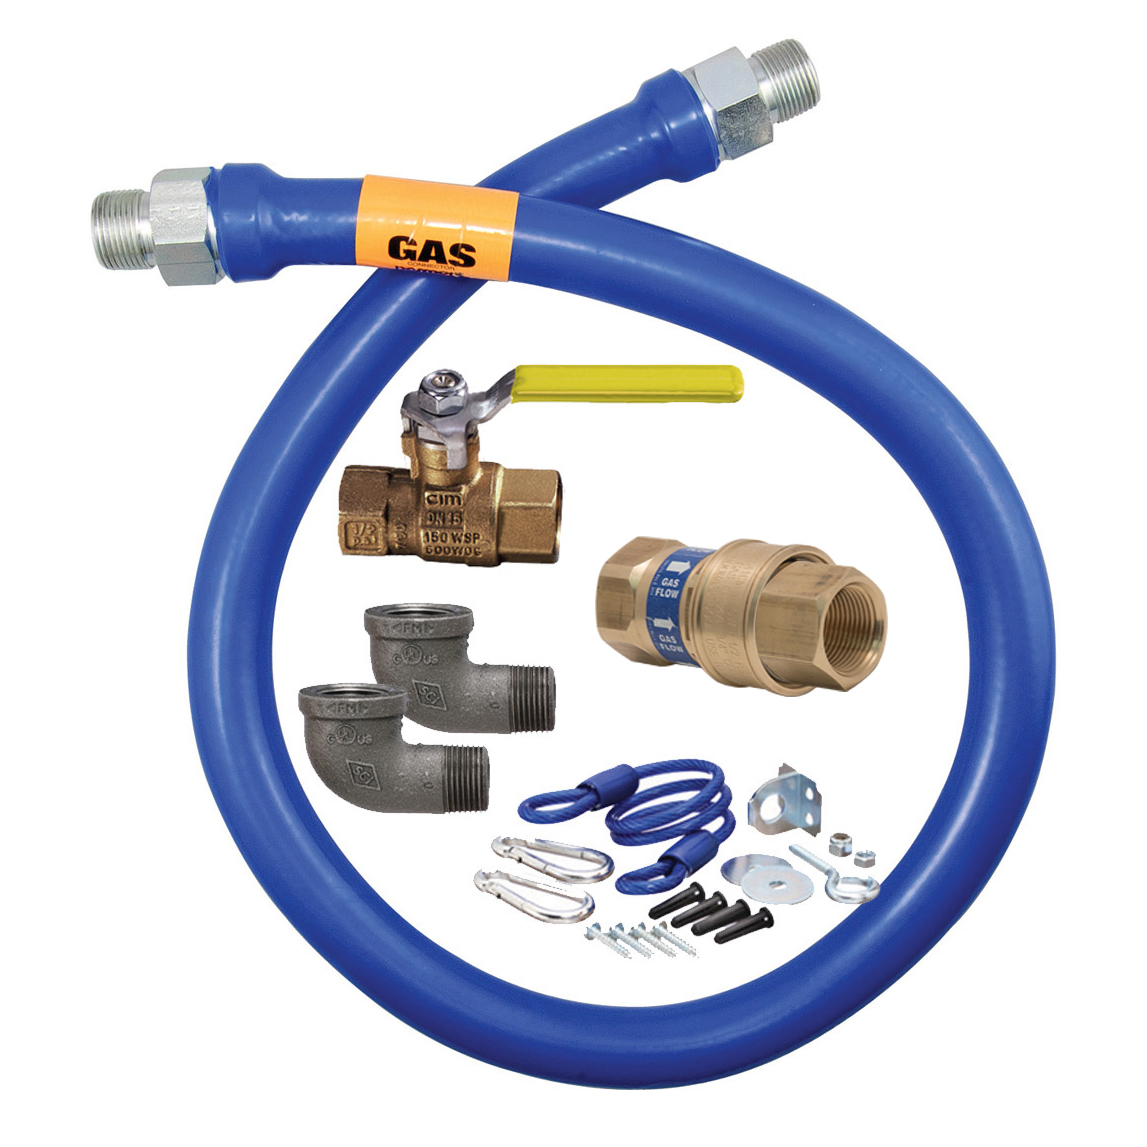 Dormont Manufacturing 1675KITBS48 gas connector hose kit